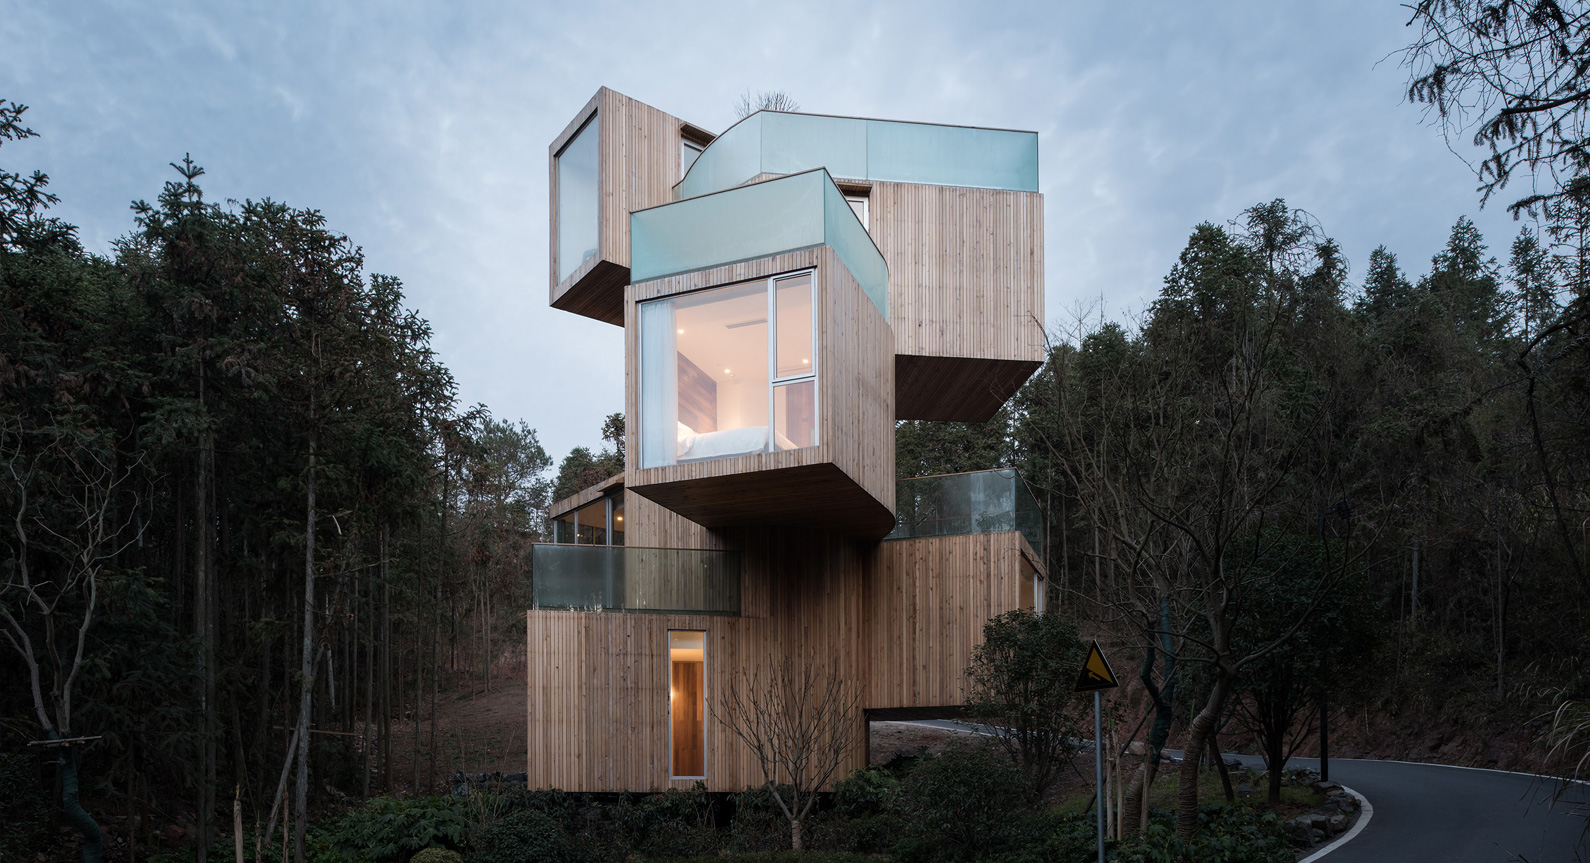 Take a Look Inside Bengo Studio's Towering Tree House